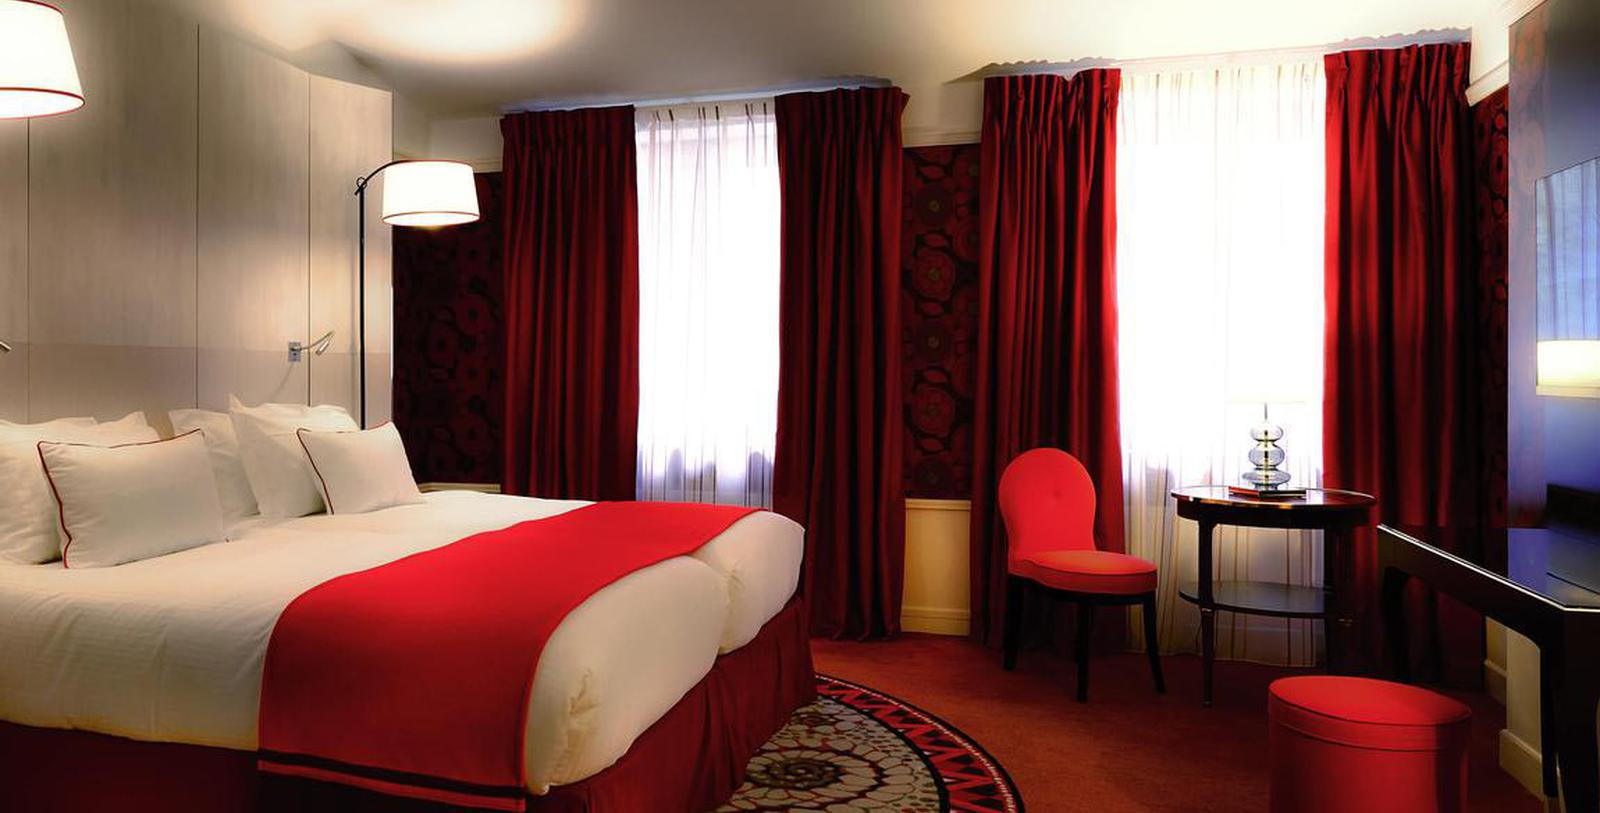 Image of Guestroom Interior Hôtel Carlton Lyon - MGallery by Sofitel, 1894, Member of Historic Hotels Worldwide, in Lyon, France, Accommodations